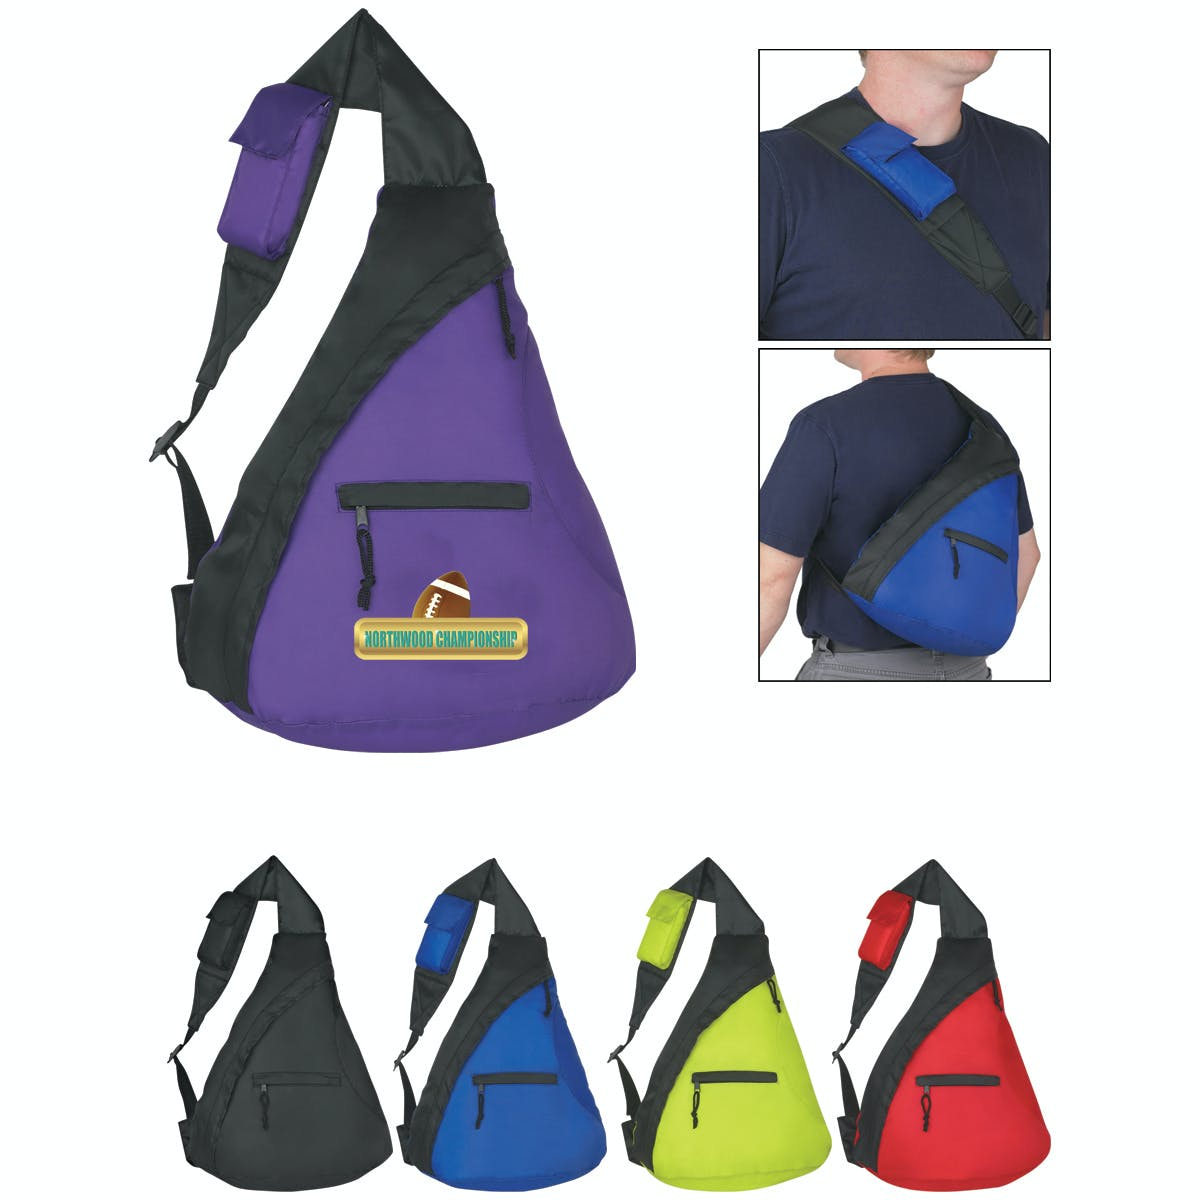 Budget Sling Backpack (Item # TGLOM-GVSXD) Backpack sold by InkEasy